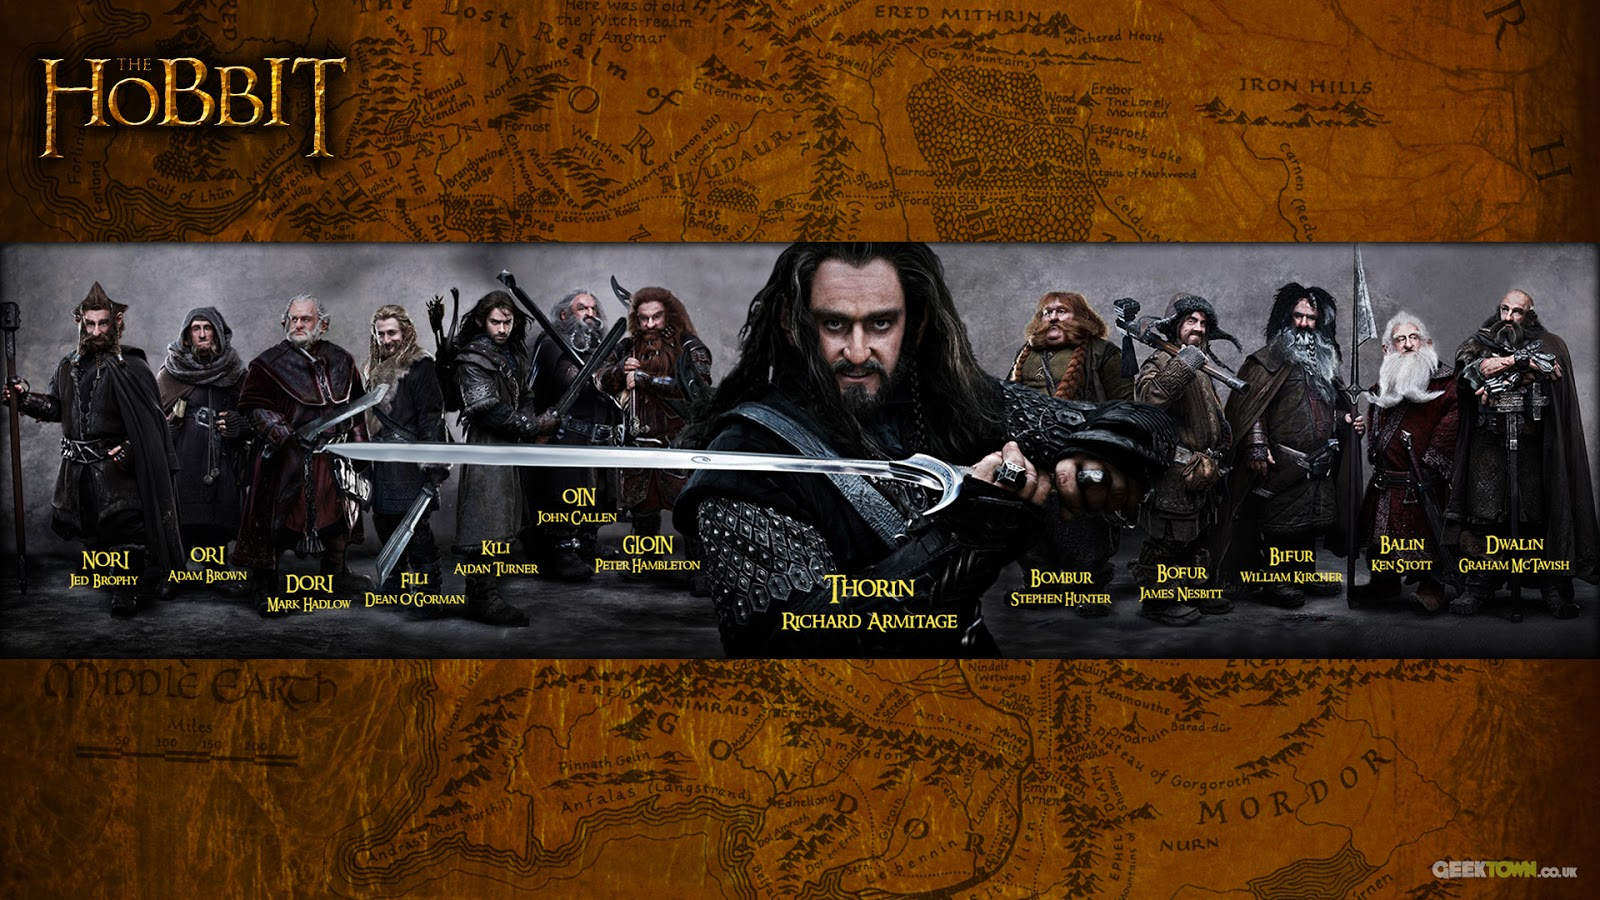 http://4.bp.blogspot.com/-ZJ5qsbgxTlo/UNzD0lVbwEI/AAAAAAAAAv4/2UnfXlnv1Ds/s1600/the_hobbit_dwarves_desktop_names_wallpaper-HD.jpg